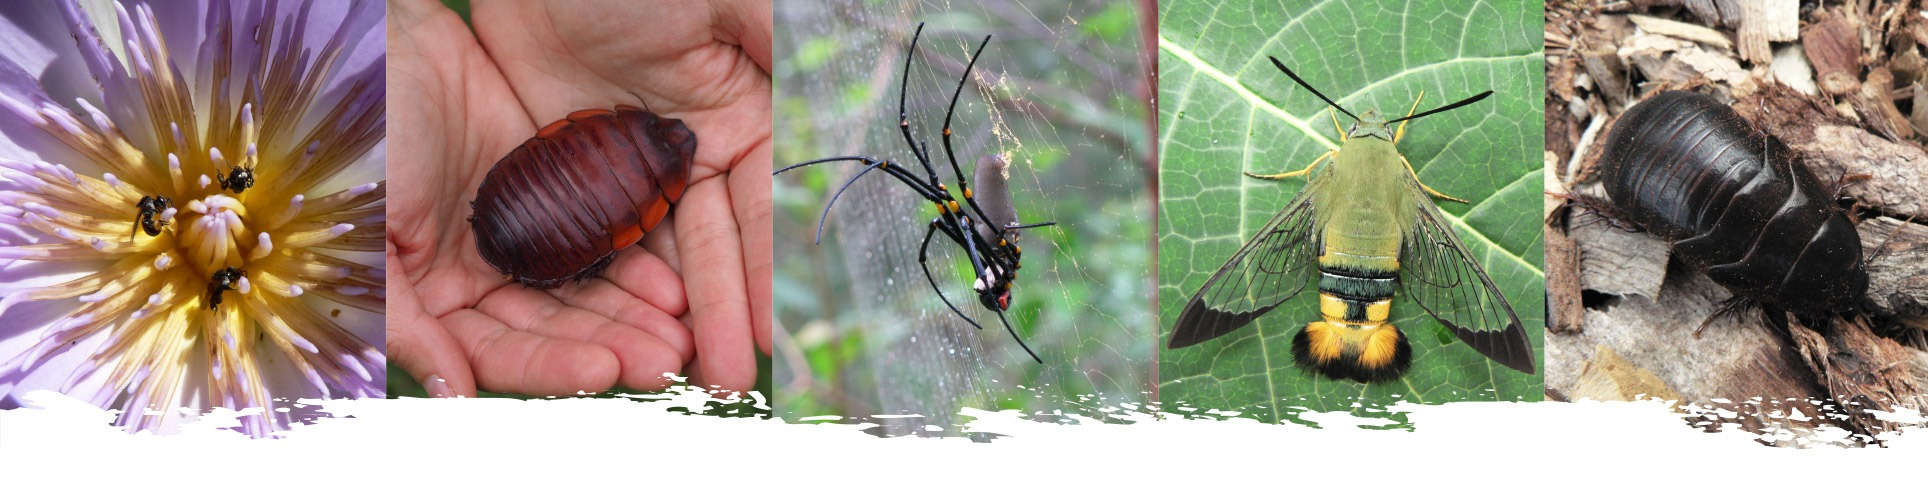 insect-photo-strip2